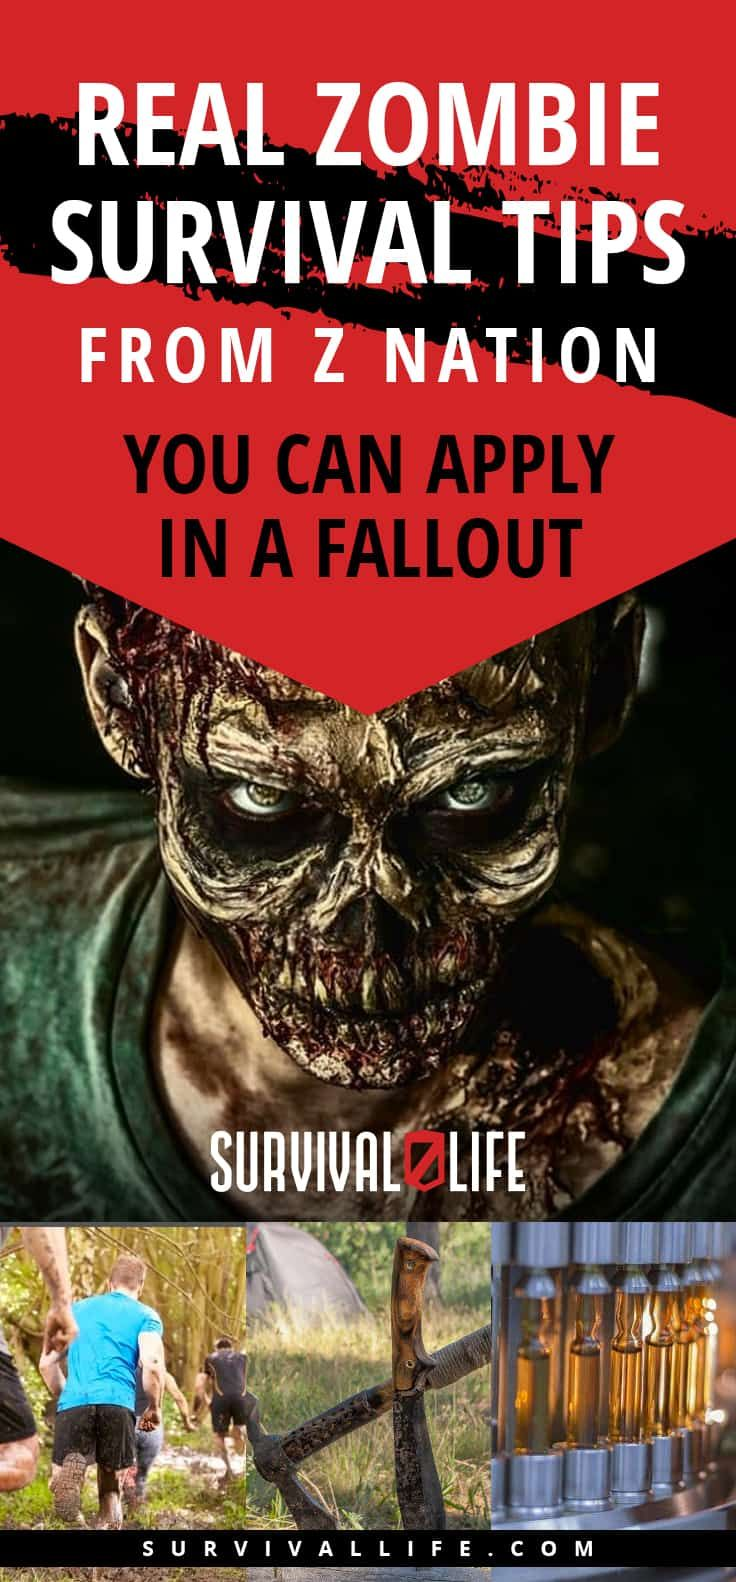 Zombie Survival | Real Zombie Survival Tips From Z Nation You Can Apply In A Fallout